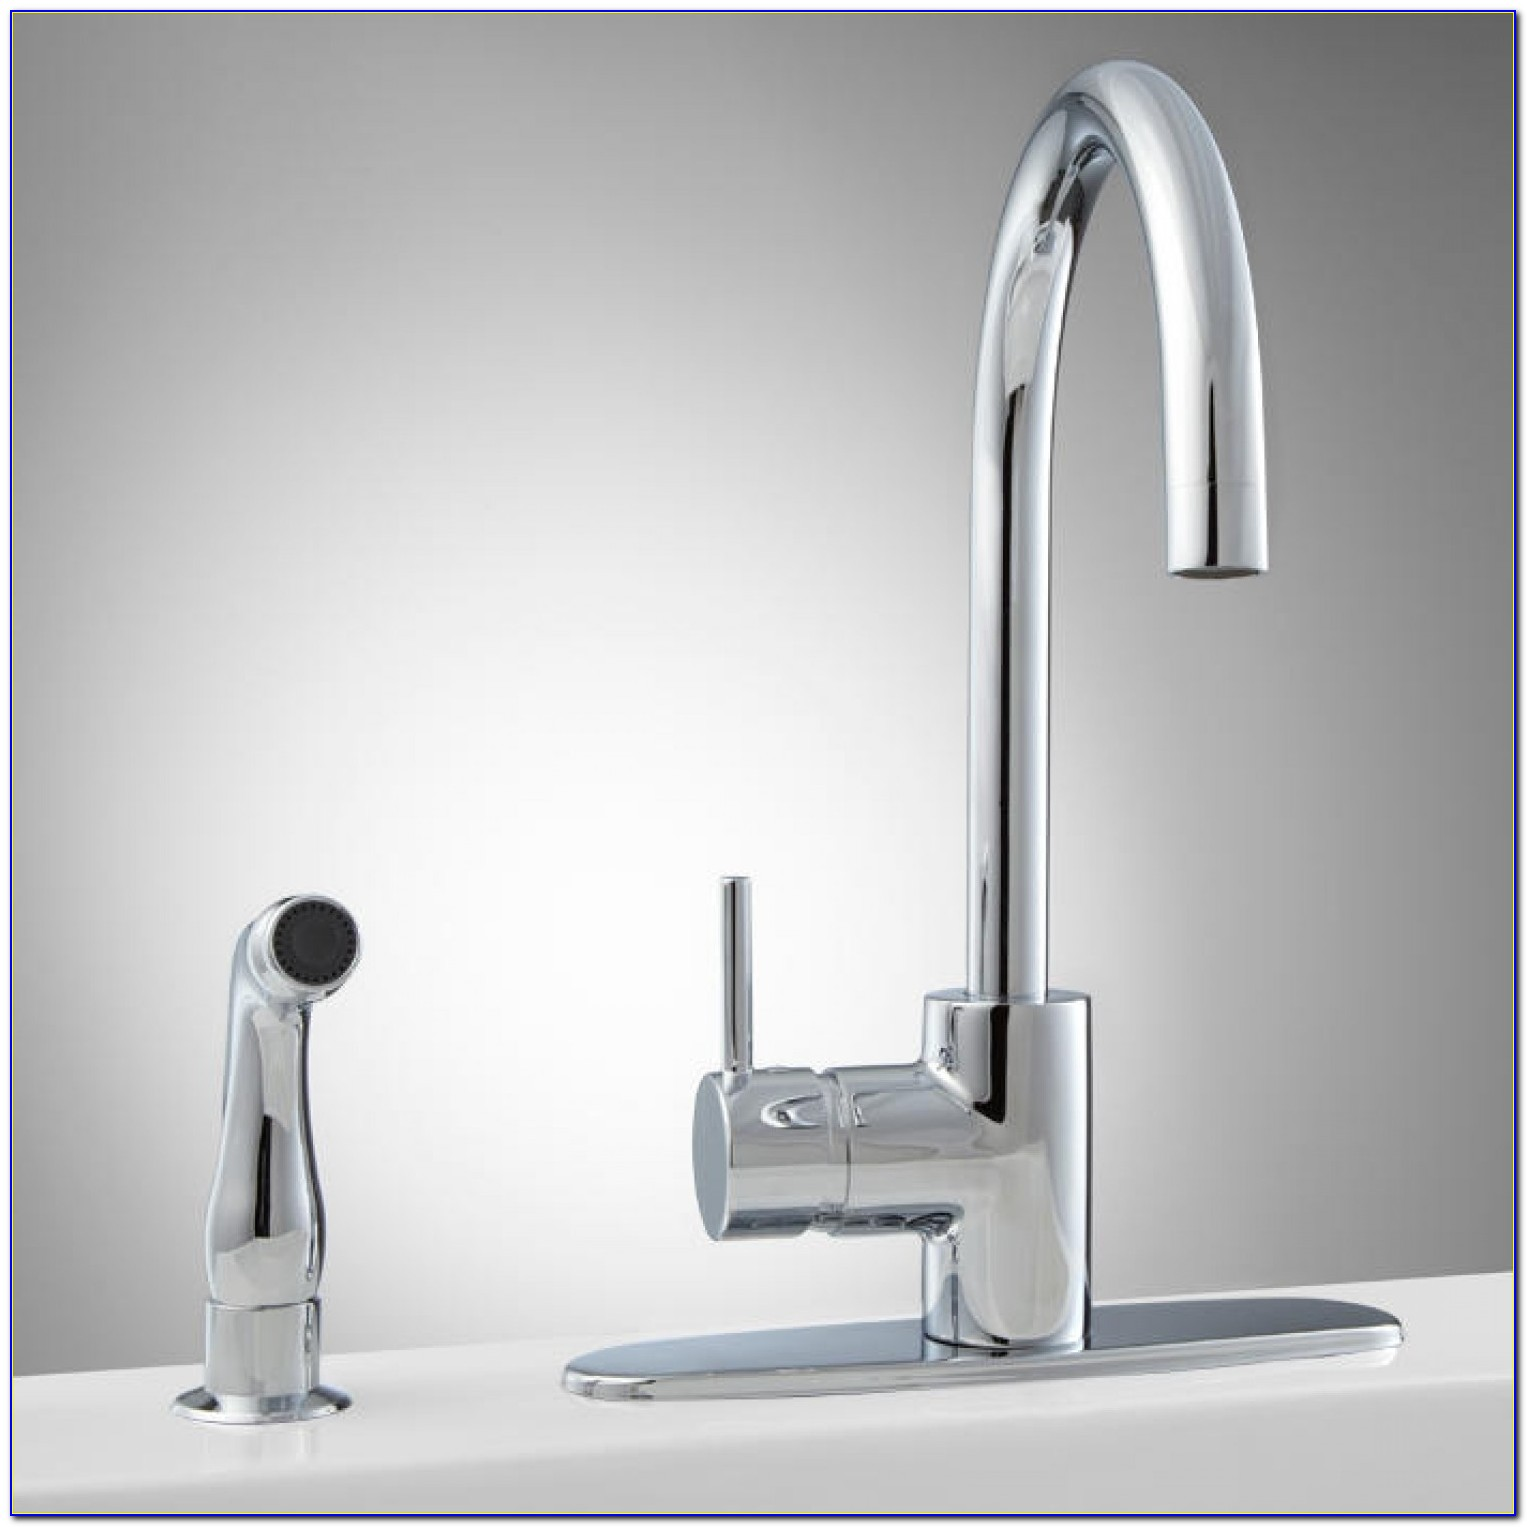 Best Kitchen Faucet With Sidespray Best Kitchen Faucet With Sidespray Henton Kitchen Faucet With Side Spray Kitchen 1500 X 1500